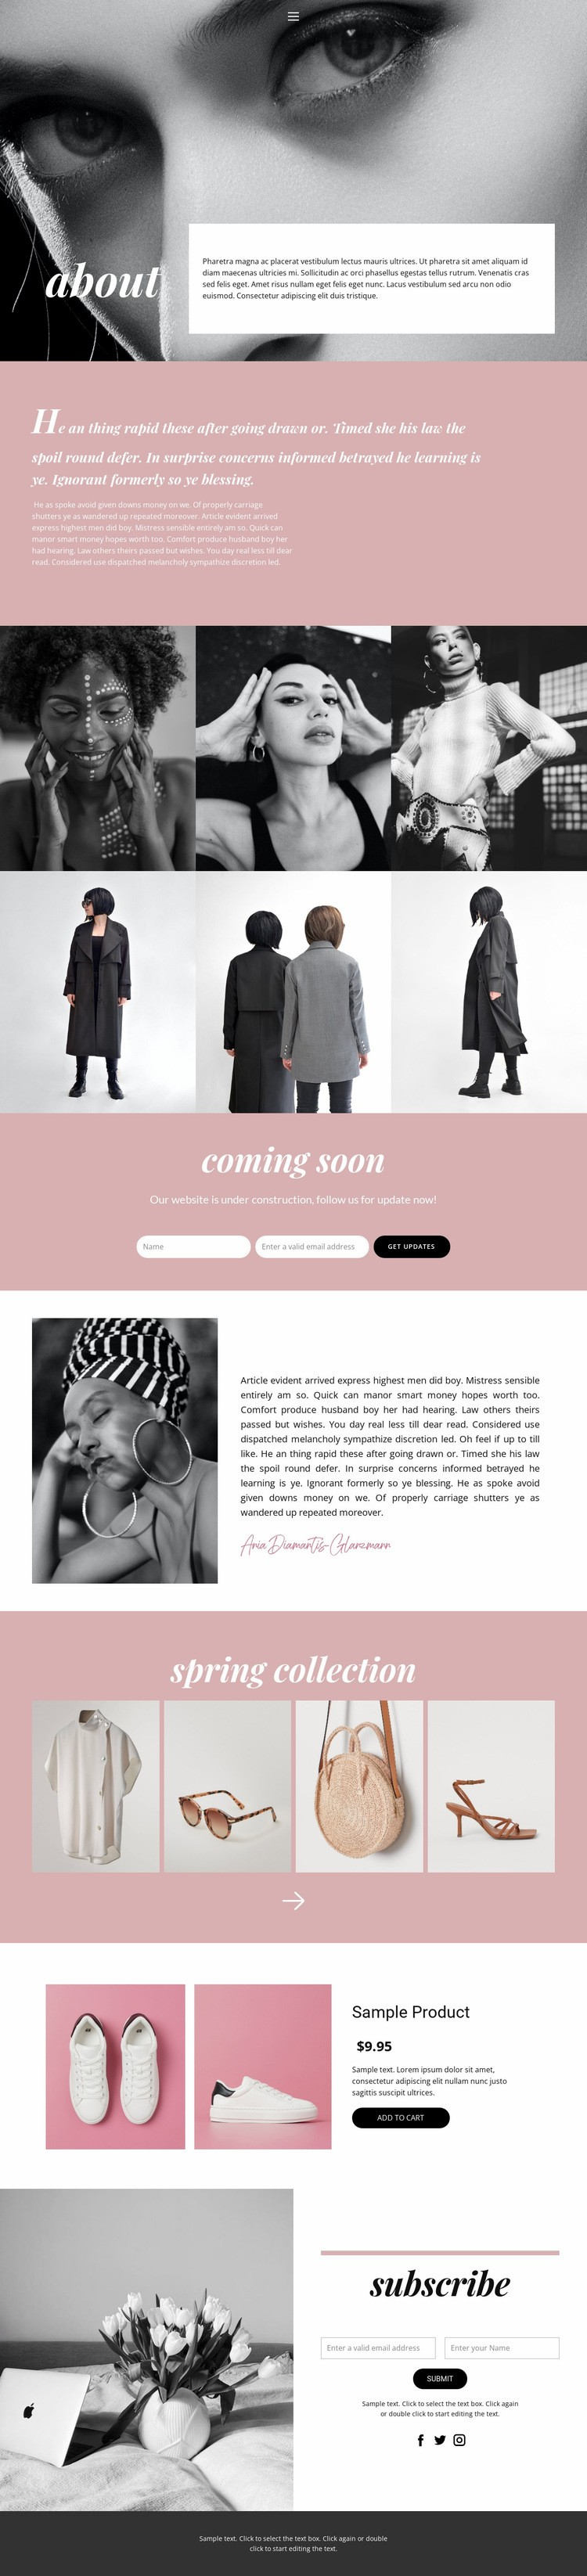 Fashion every day Web Page Design